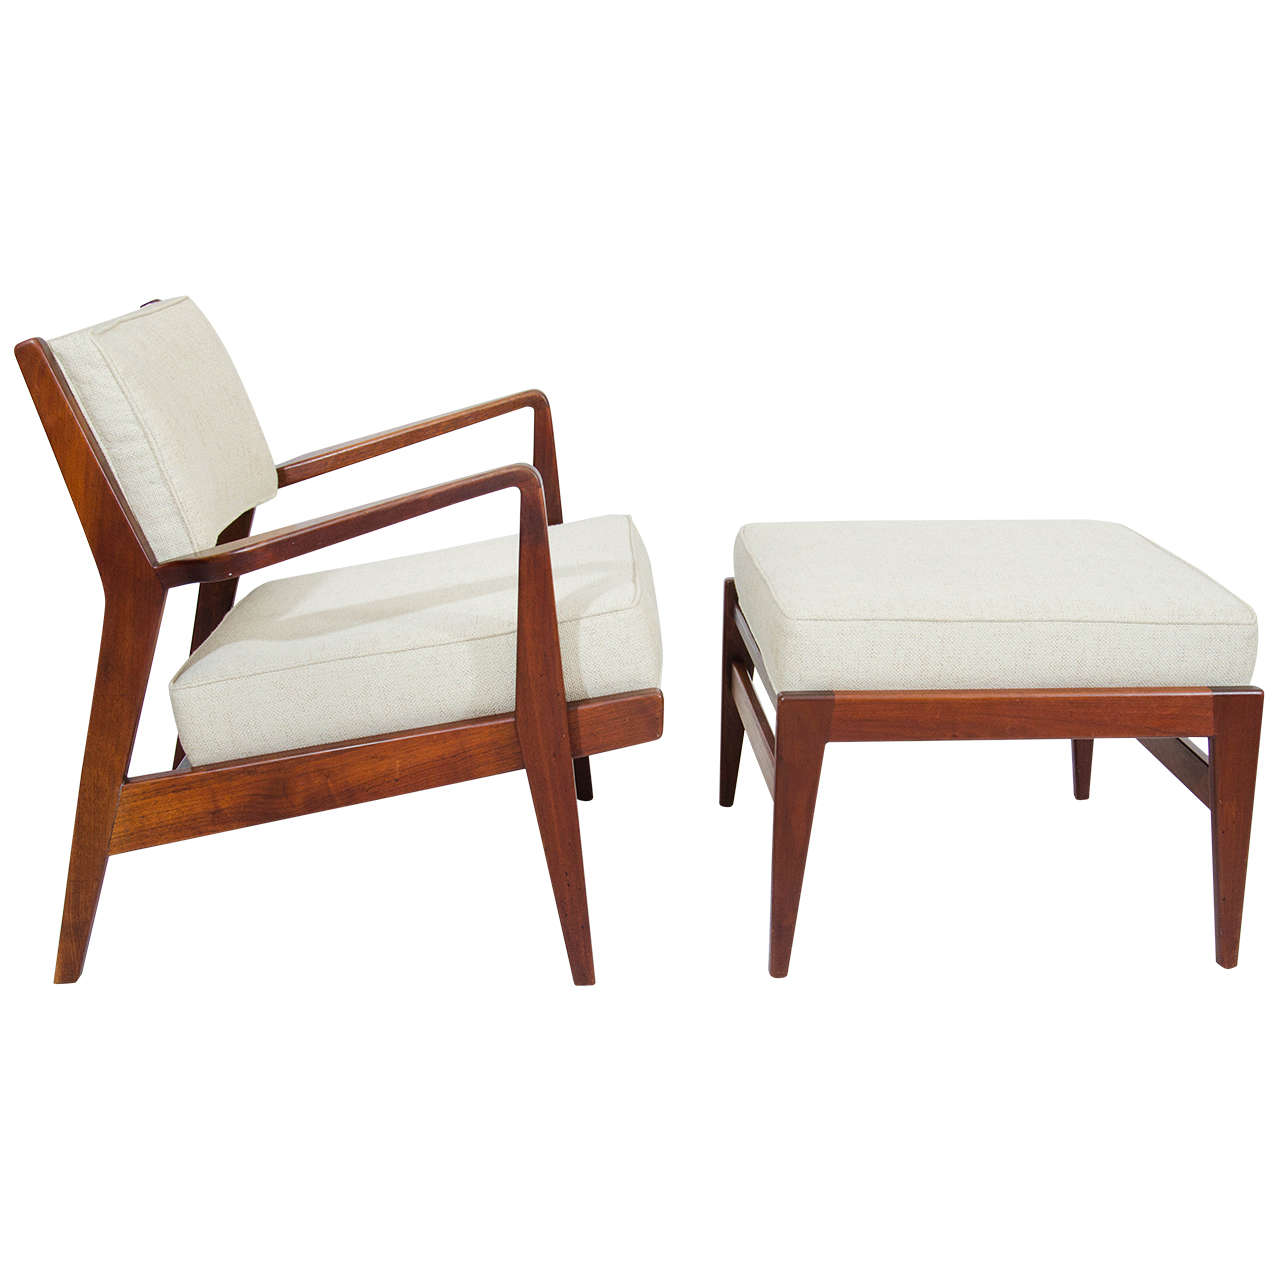 Jens Risom Side Chair Jens Risom Lounge Chair And Ottoman At 1stdibs